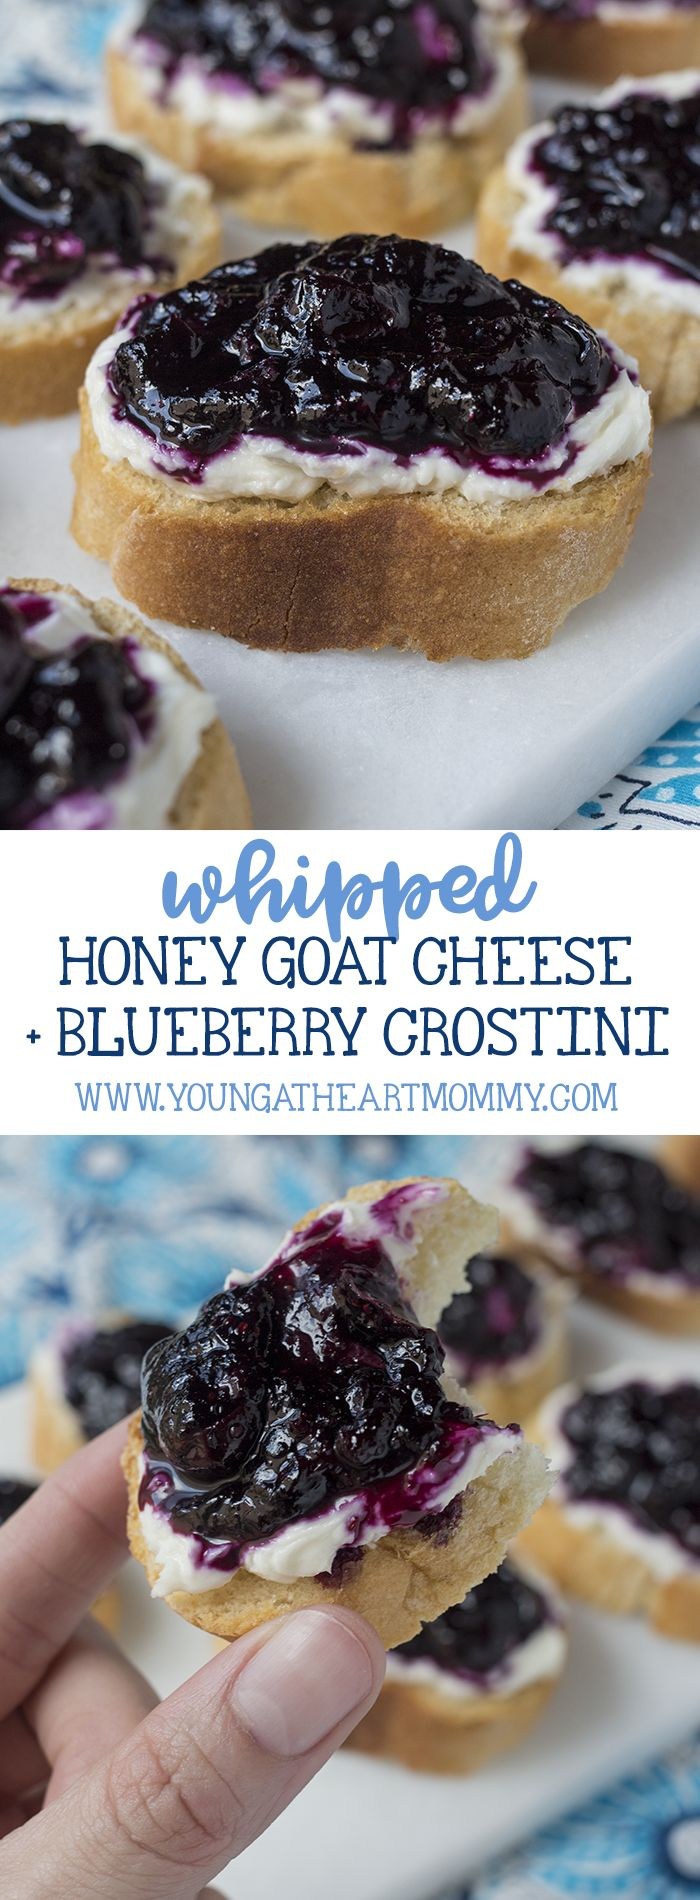 Whipped Honey Goat Cheese & Blueberry Compote Crostini | Young At Heart Mommy